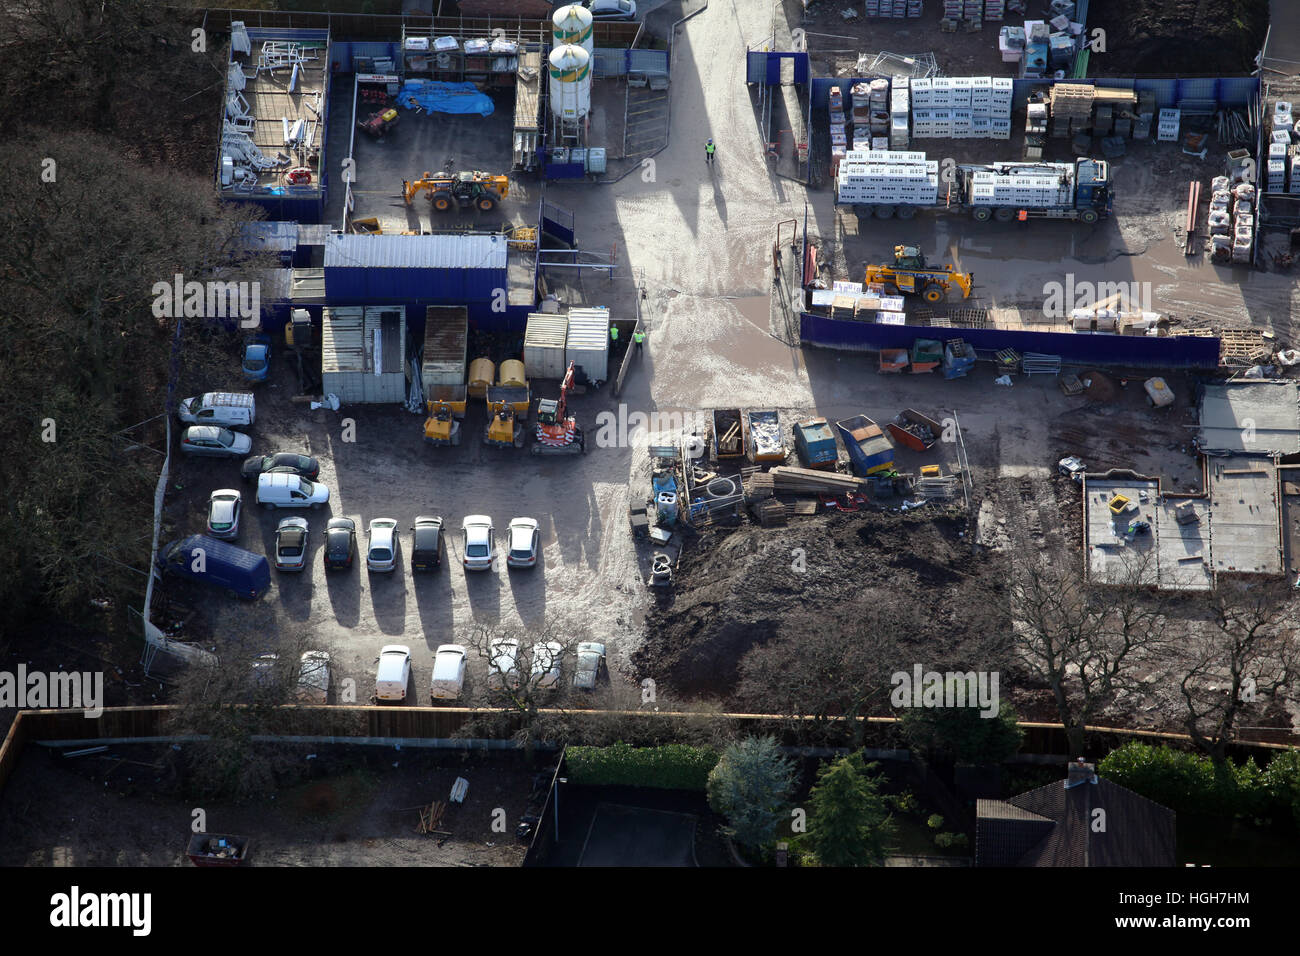 aerial view of a builders yard on a construction building site, UK - Stock Image